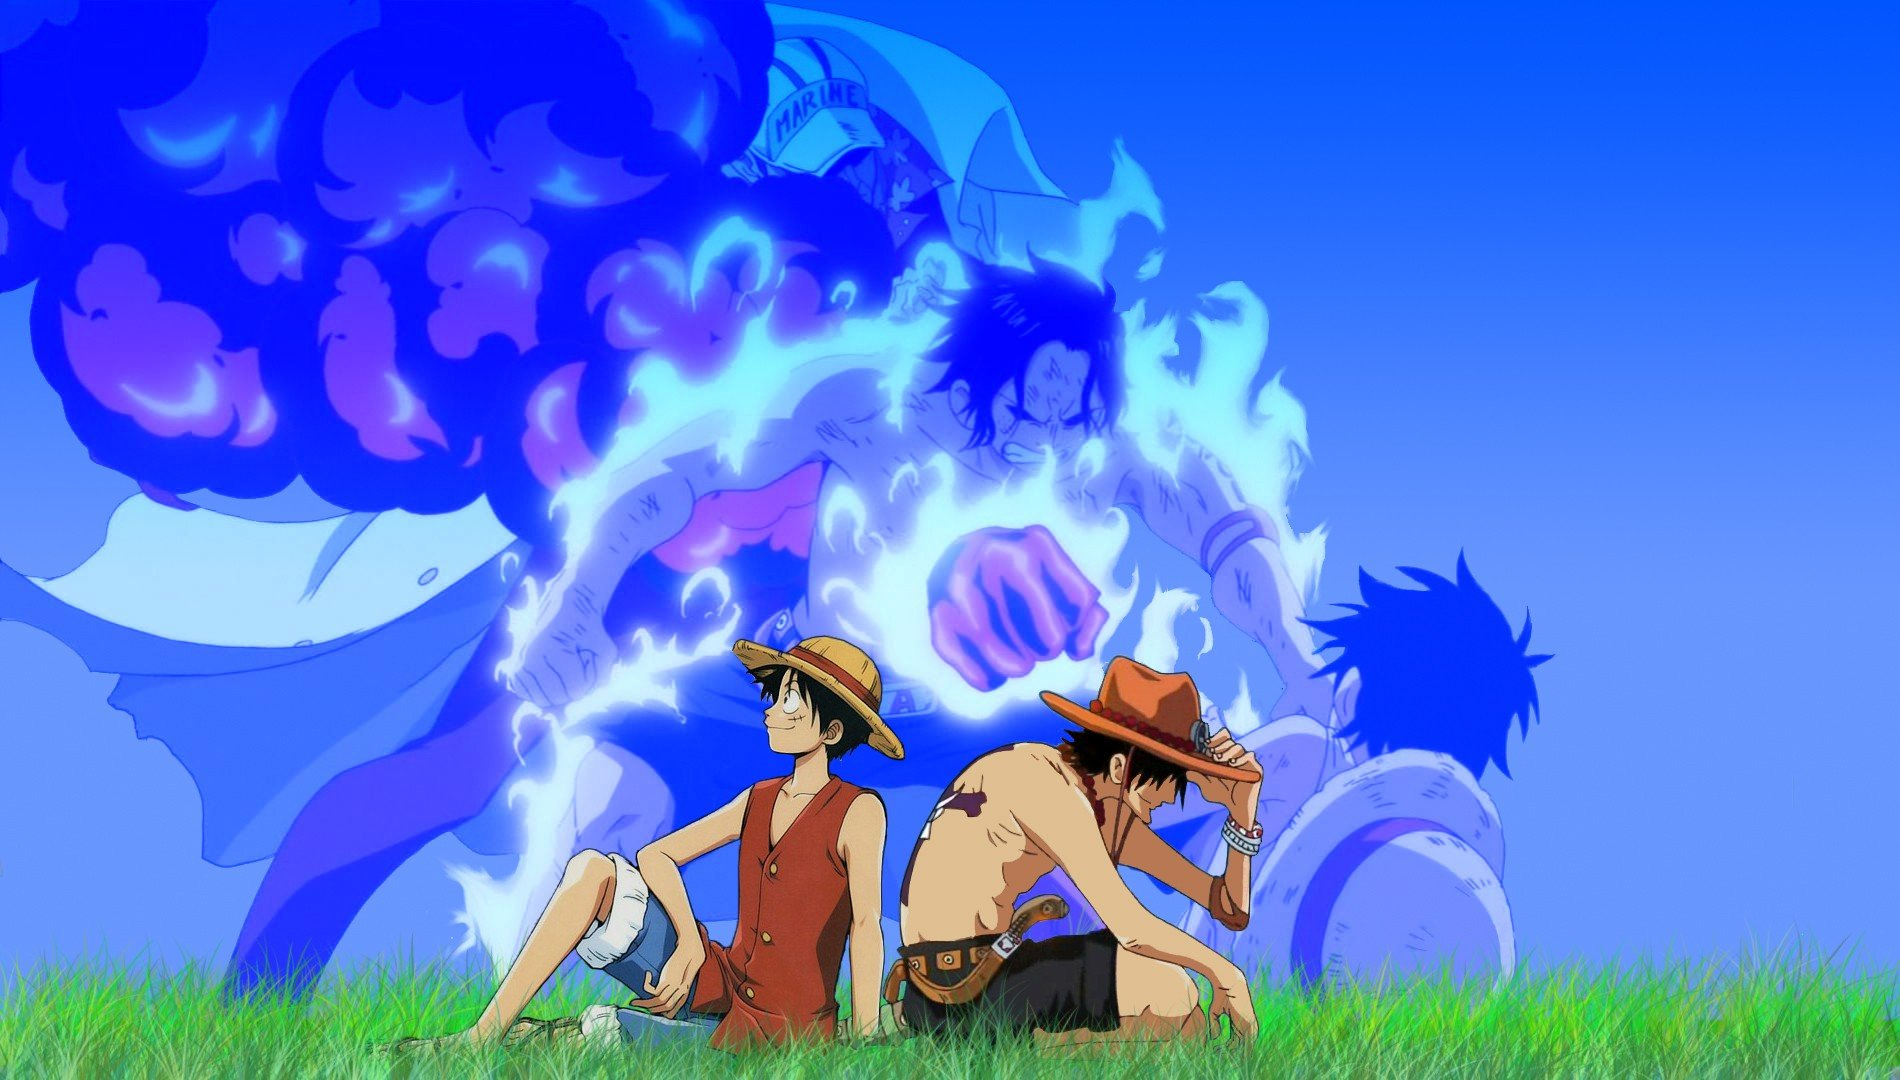 One Piece (anime) Ace Monkey D Luffy wallpaper | 1900x1080 ...